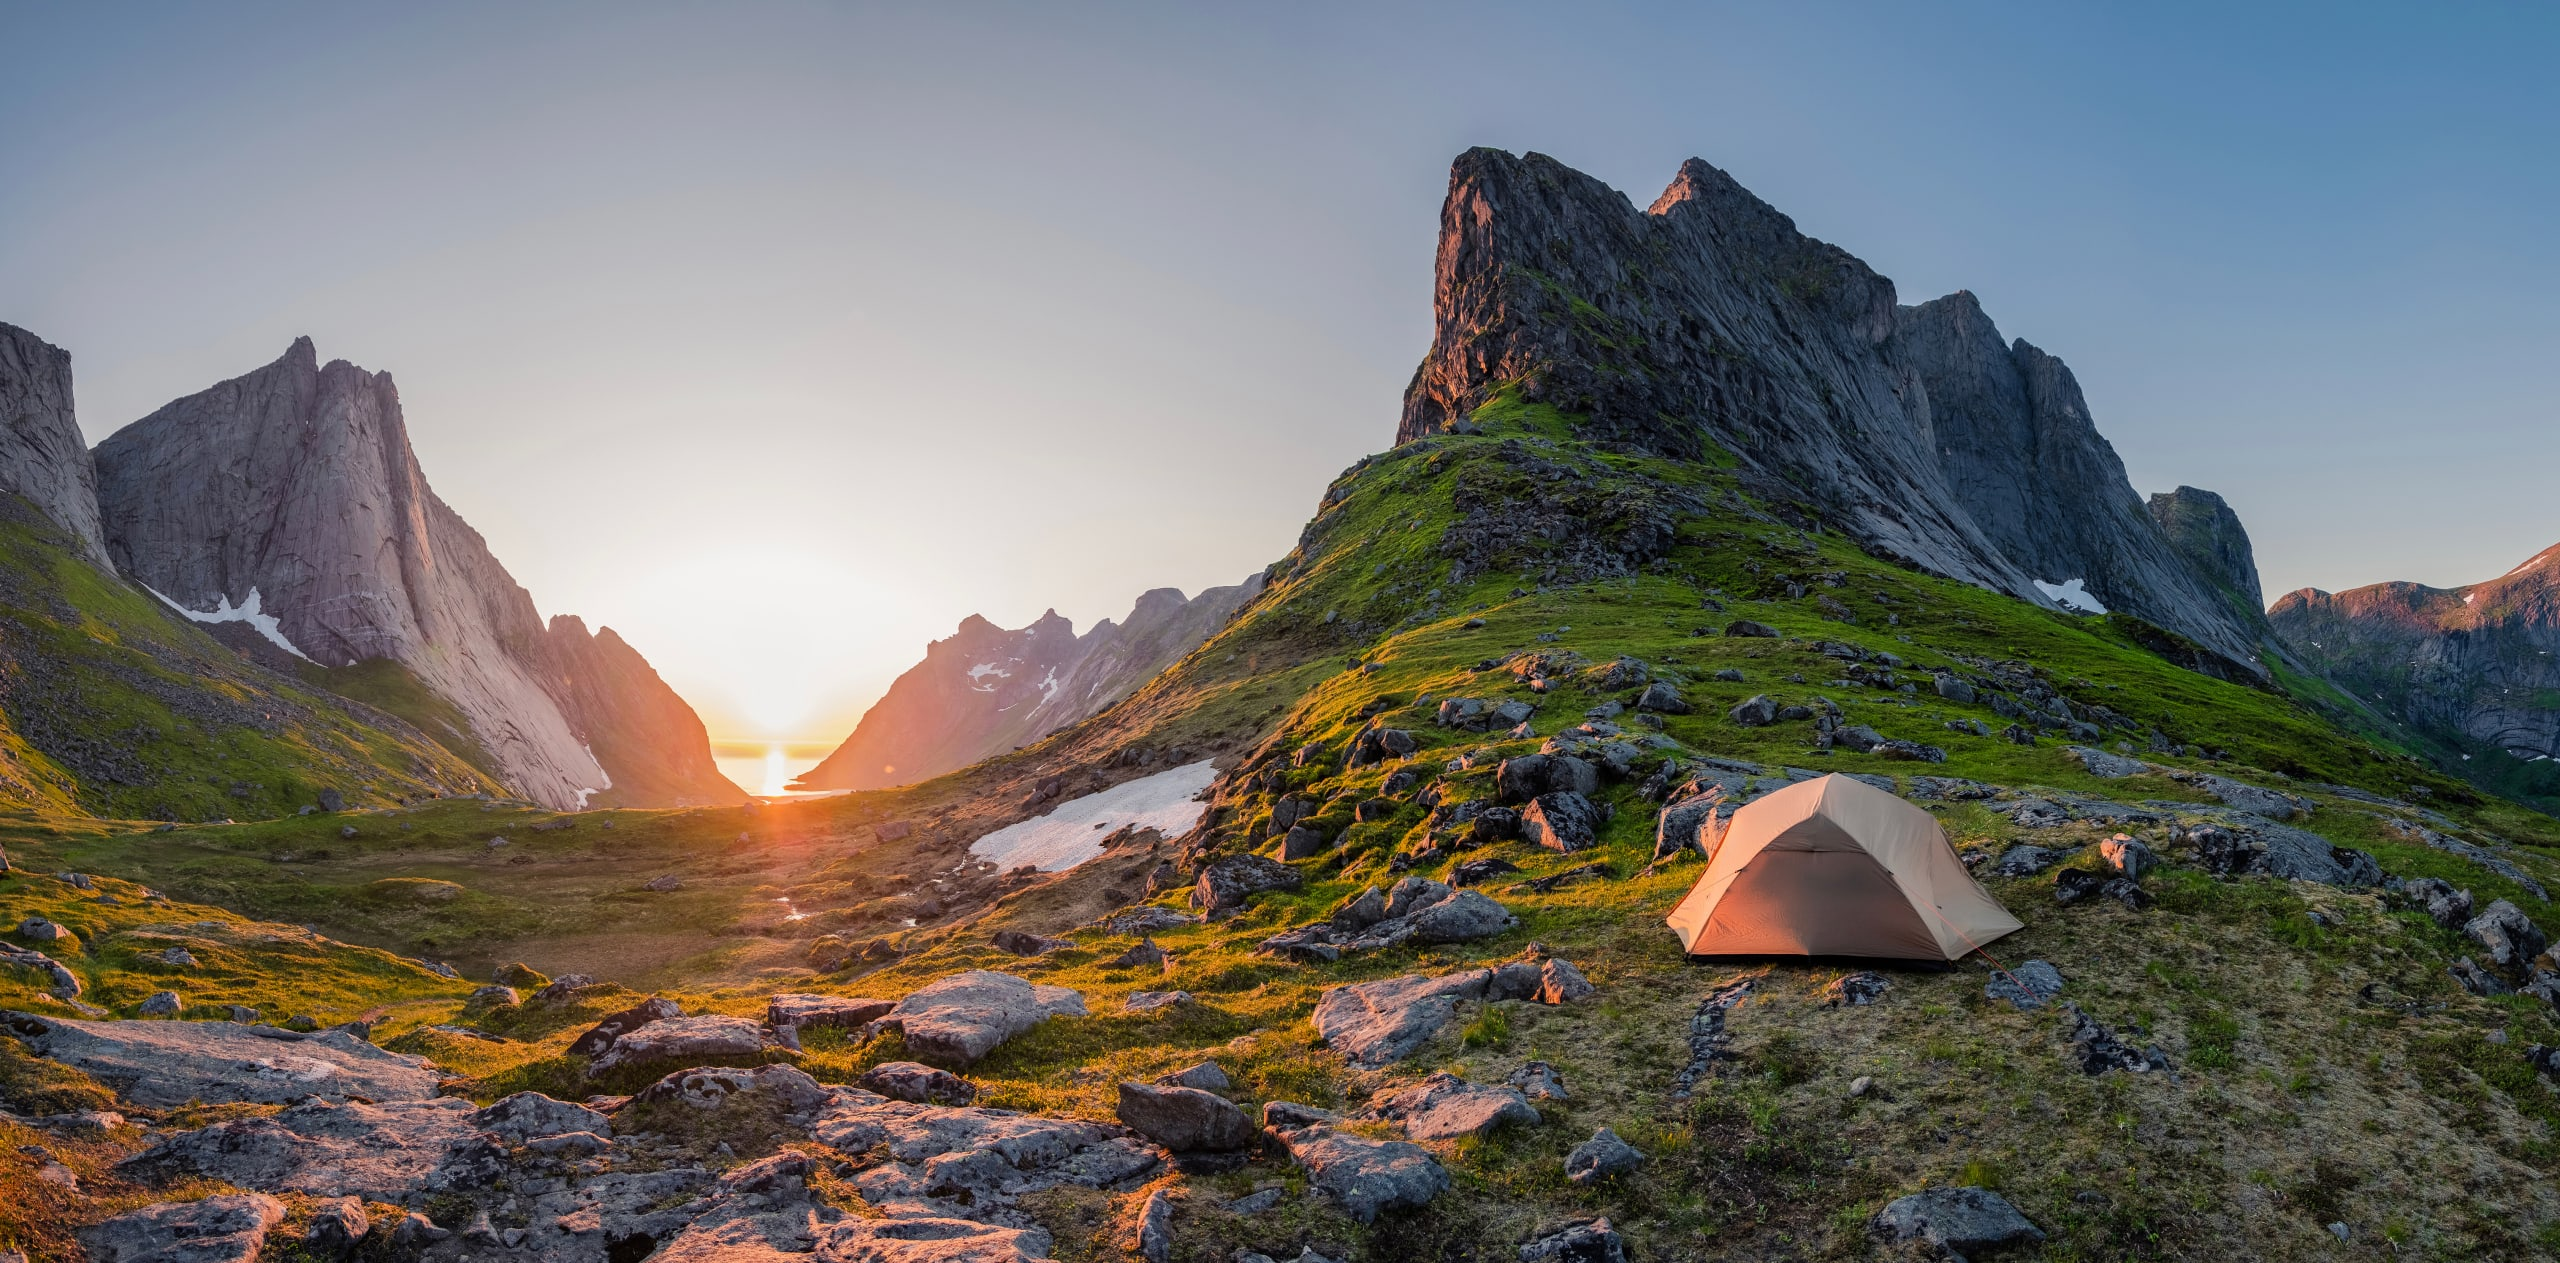 Midnight sun and camping in Lofoten